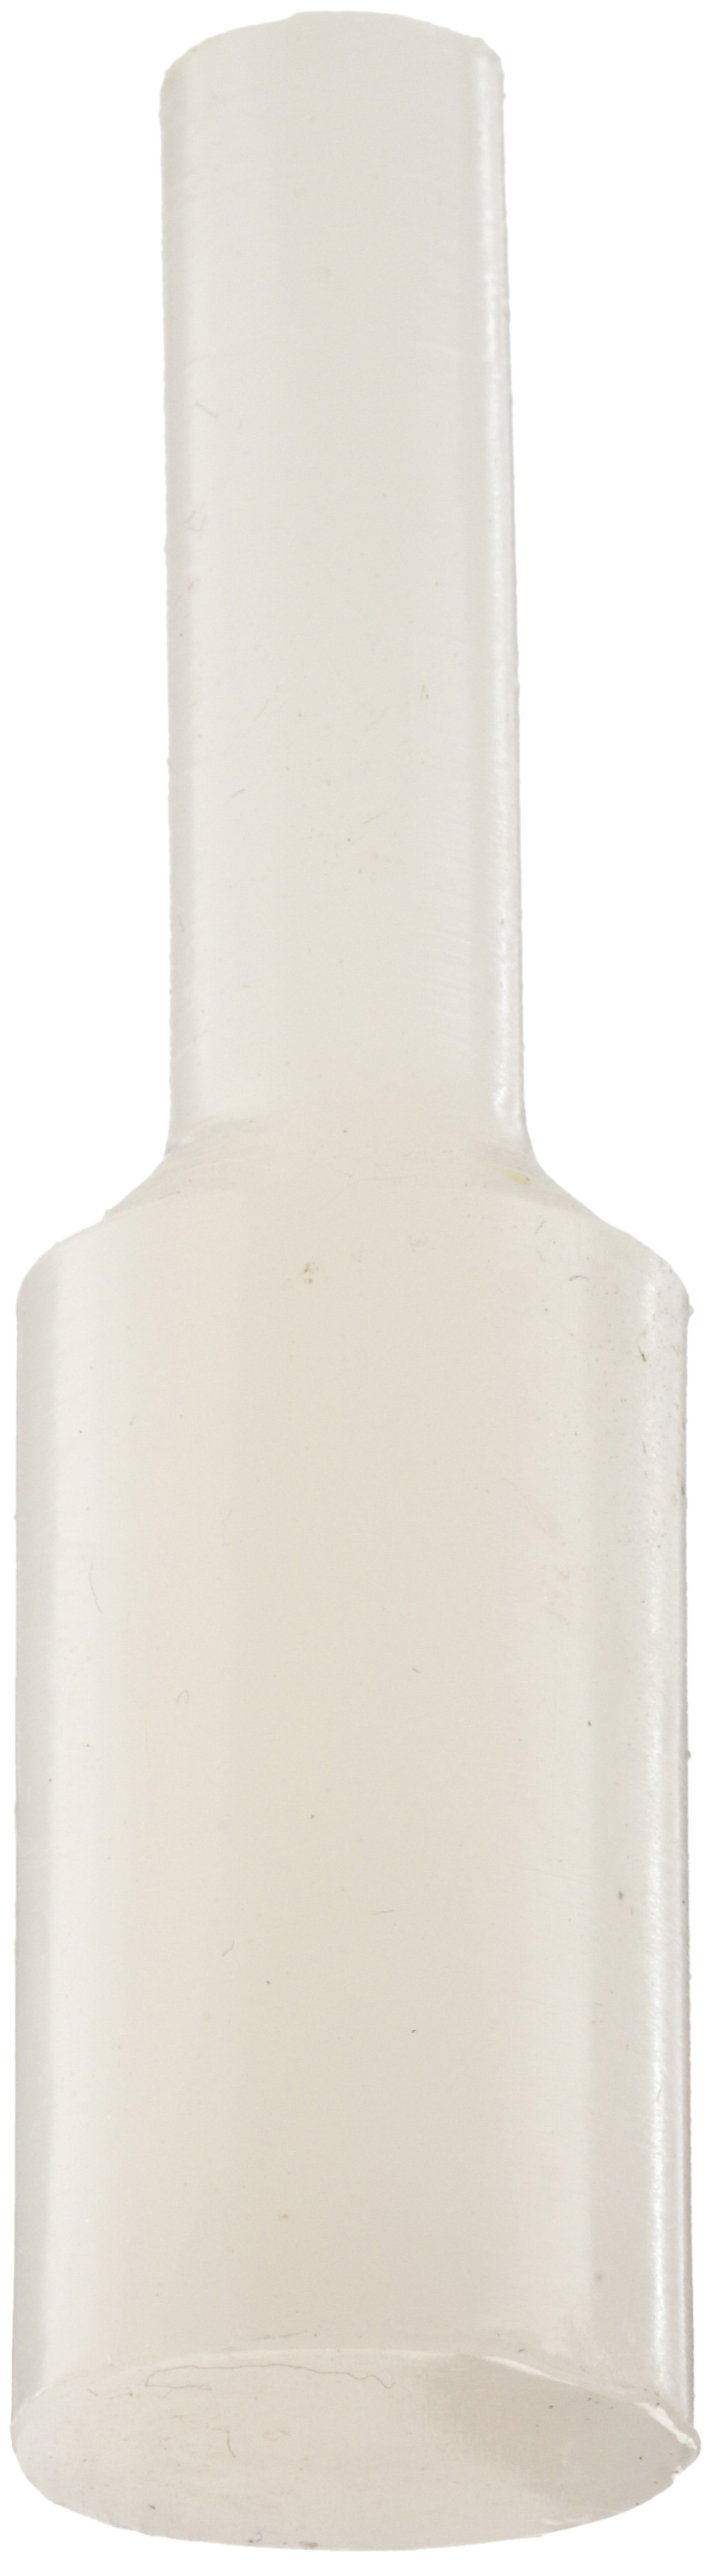 Kapsto 606 / 0104 Silicone Pull Plug, Natural, 10.4 mm (Pack of 100)